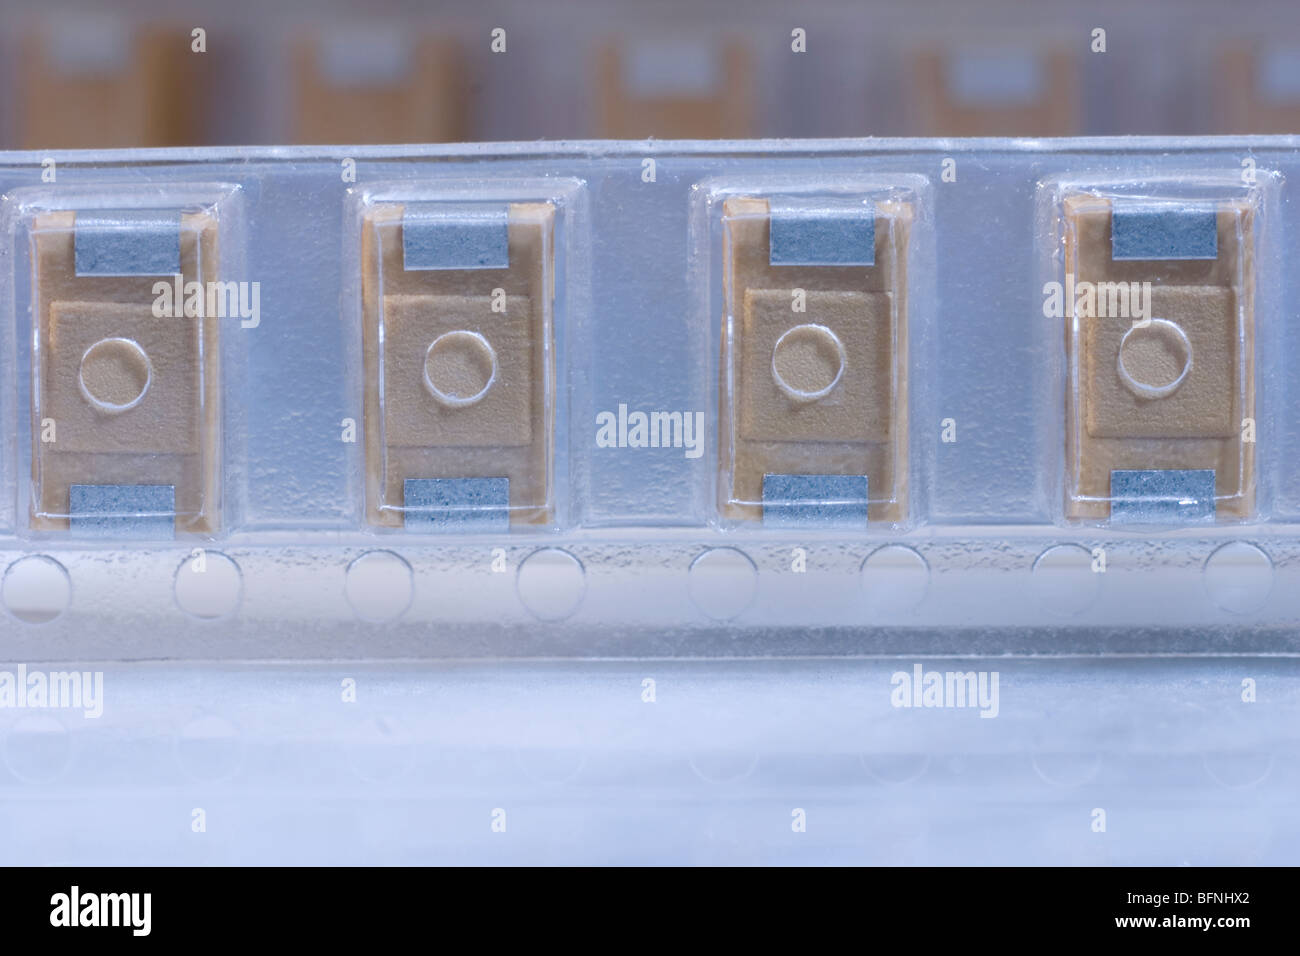 Capacitors - Stock Image